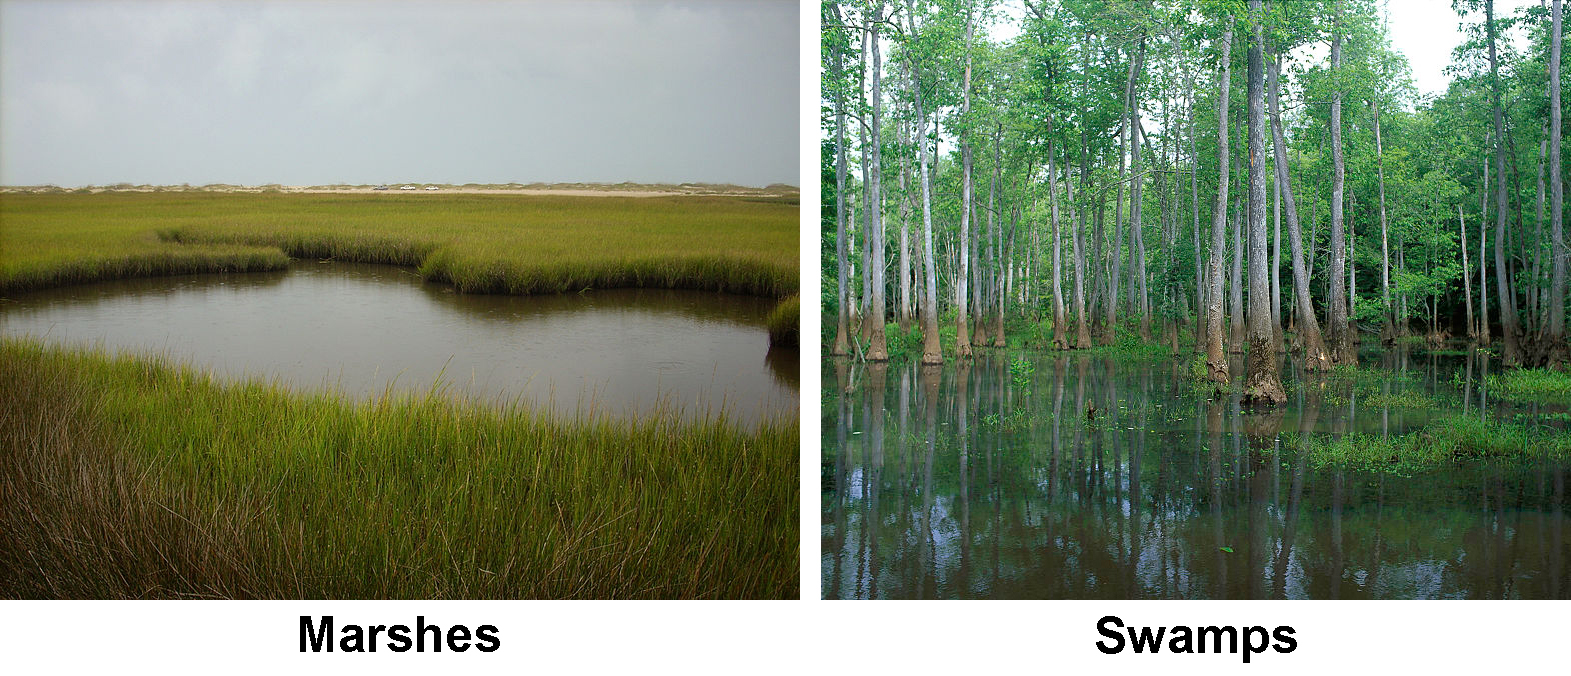 Marshes and swamps are both types of wetlands. A marsh has low shrubs and grasses while a swamp has trees as well.